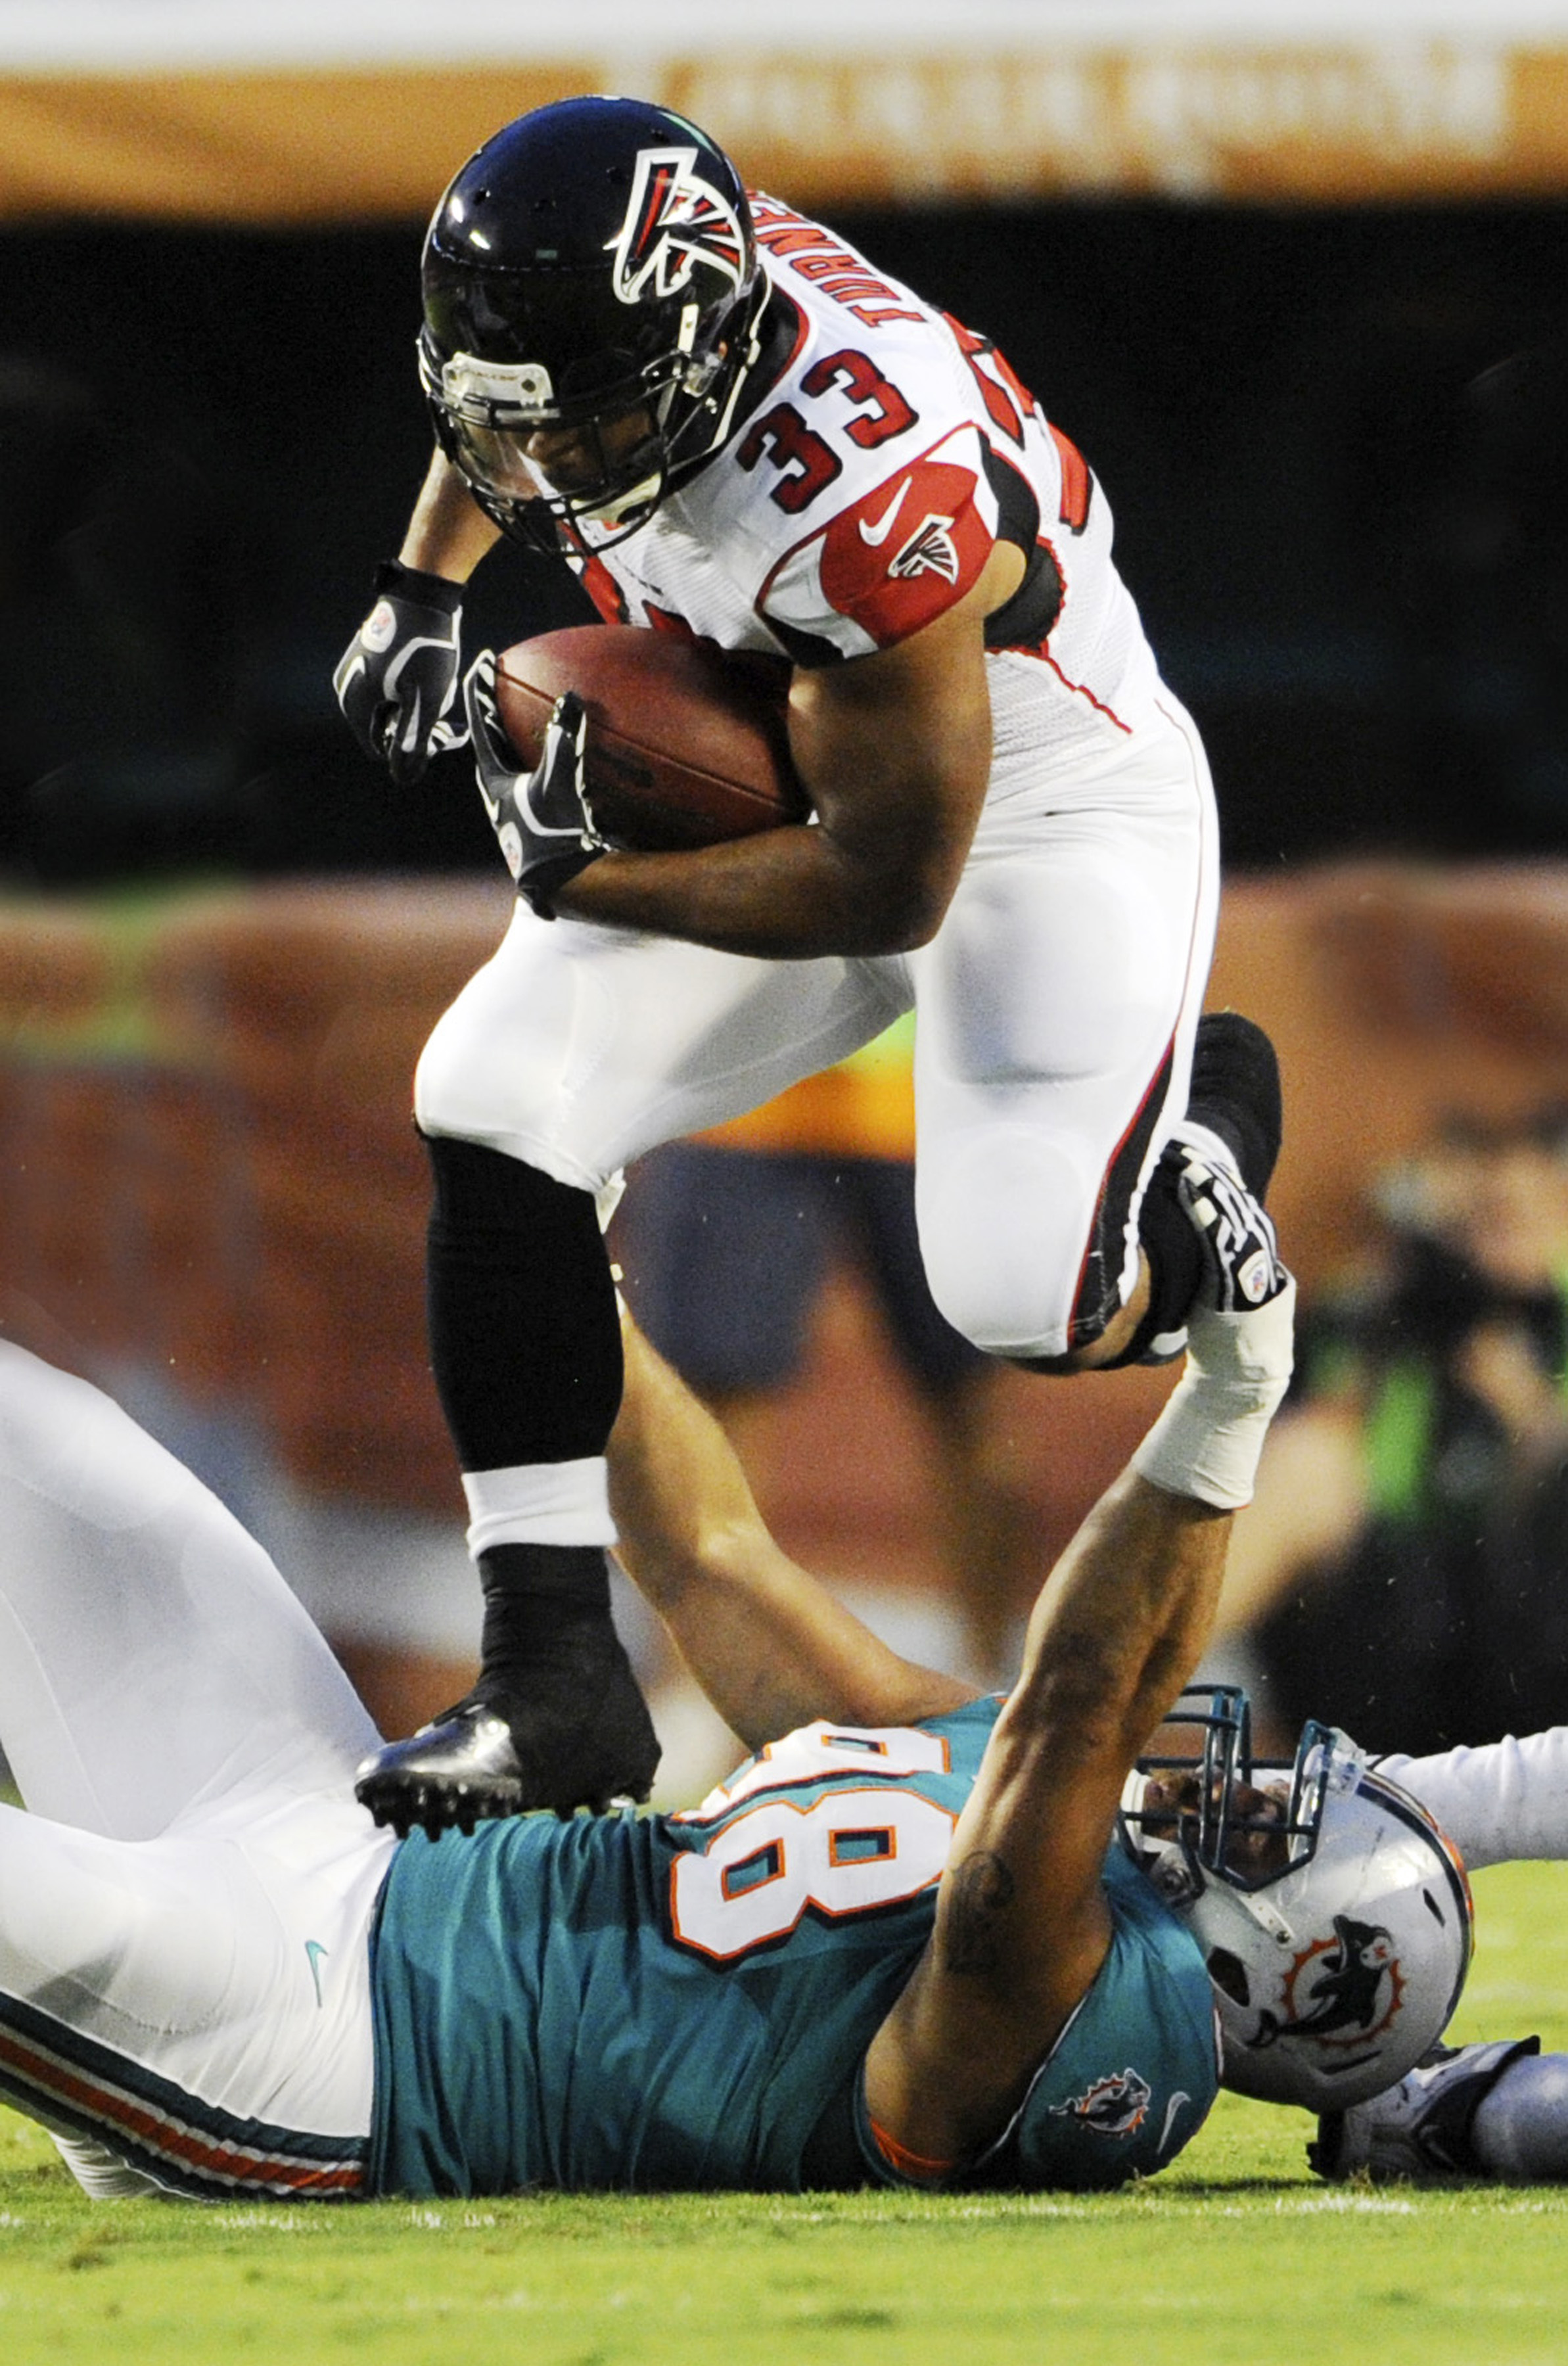 Atlanta Falcons vs Miami Dolphins